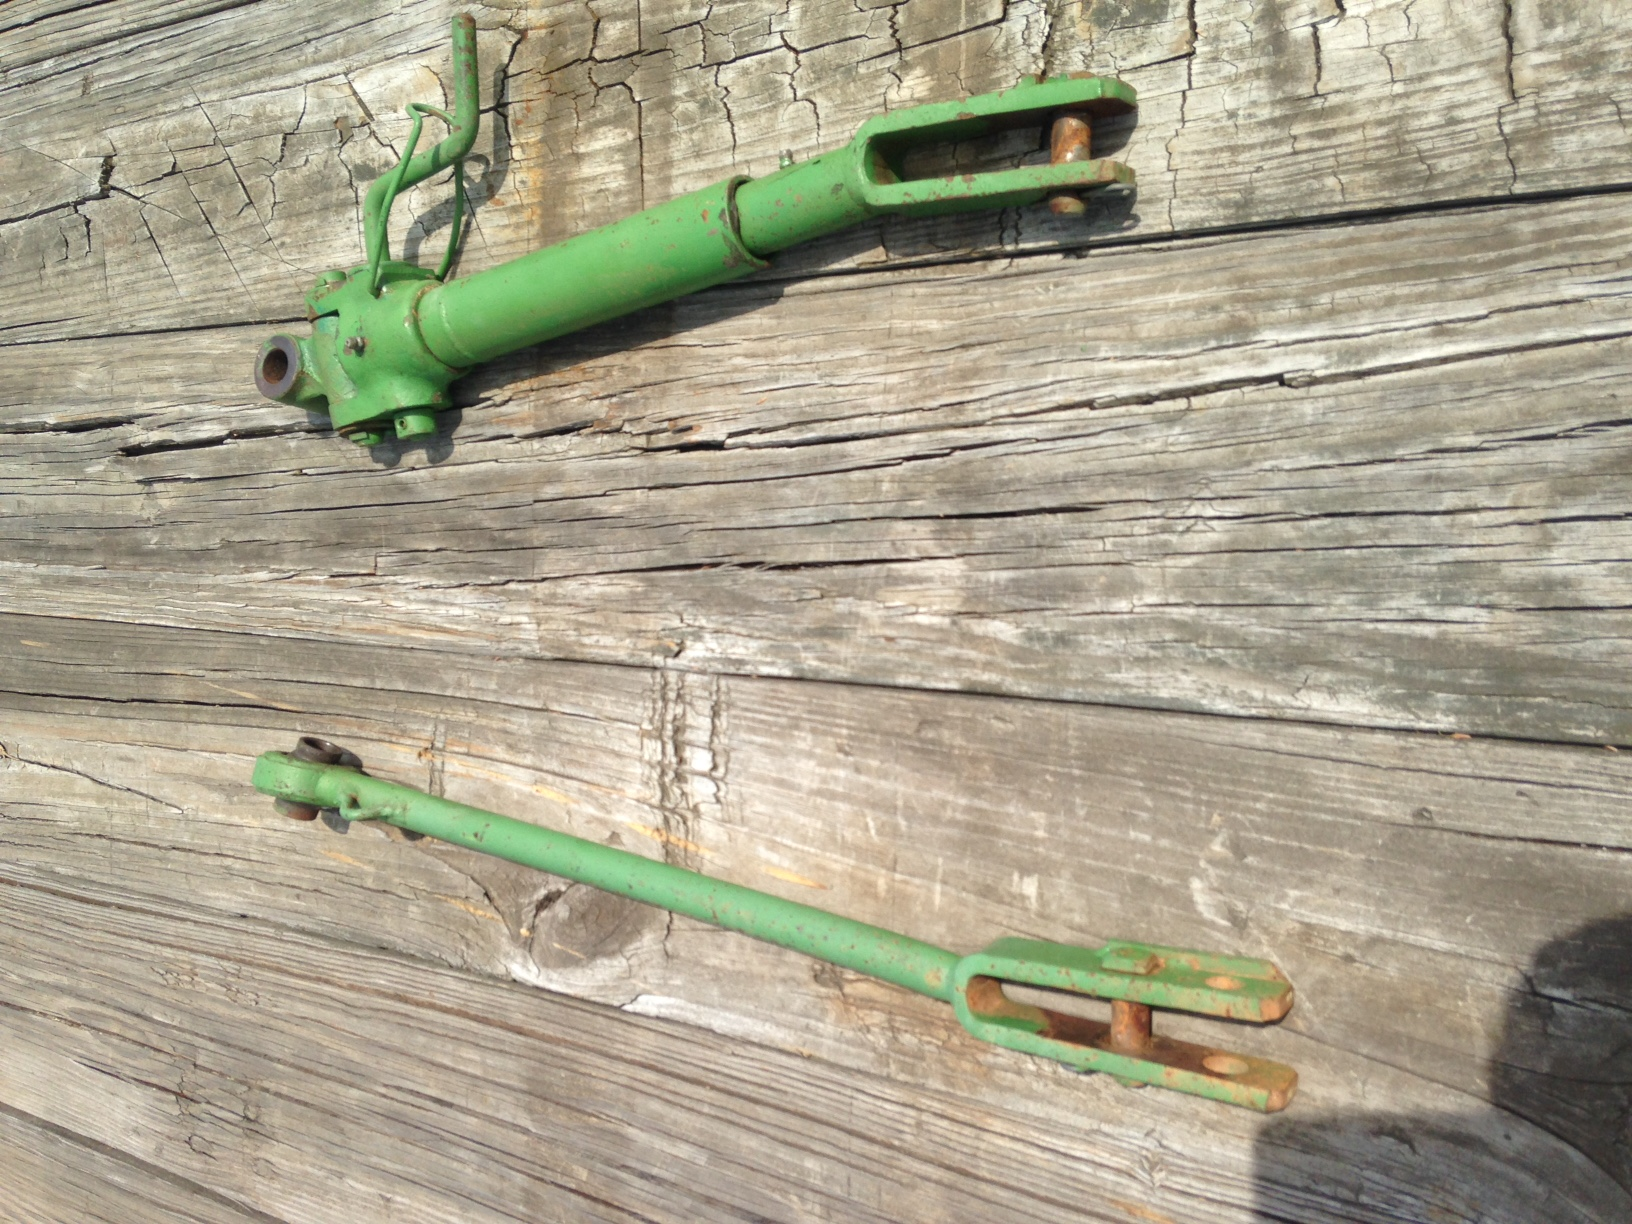 Side Link Kit JD850 Up To S/N 16000. JD950 Up To S/N 20000. Used